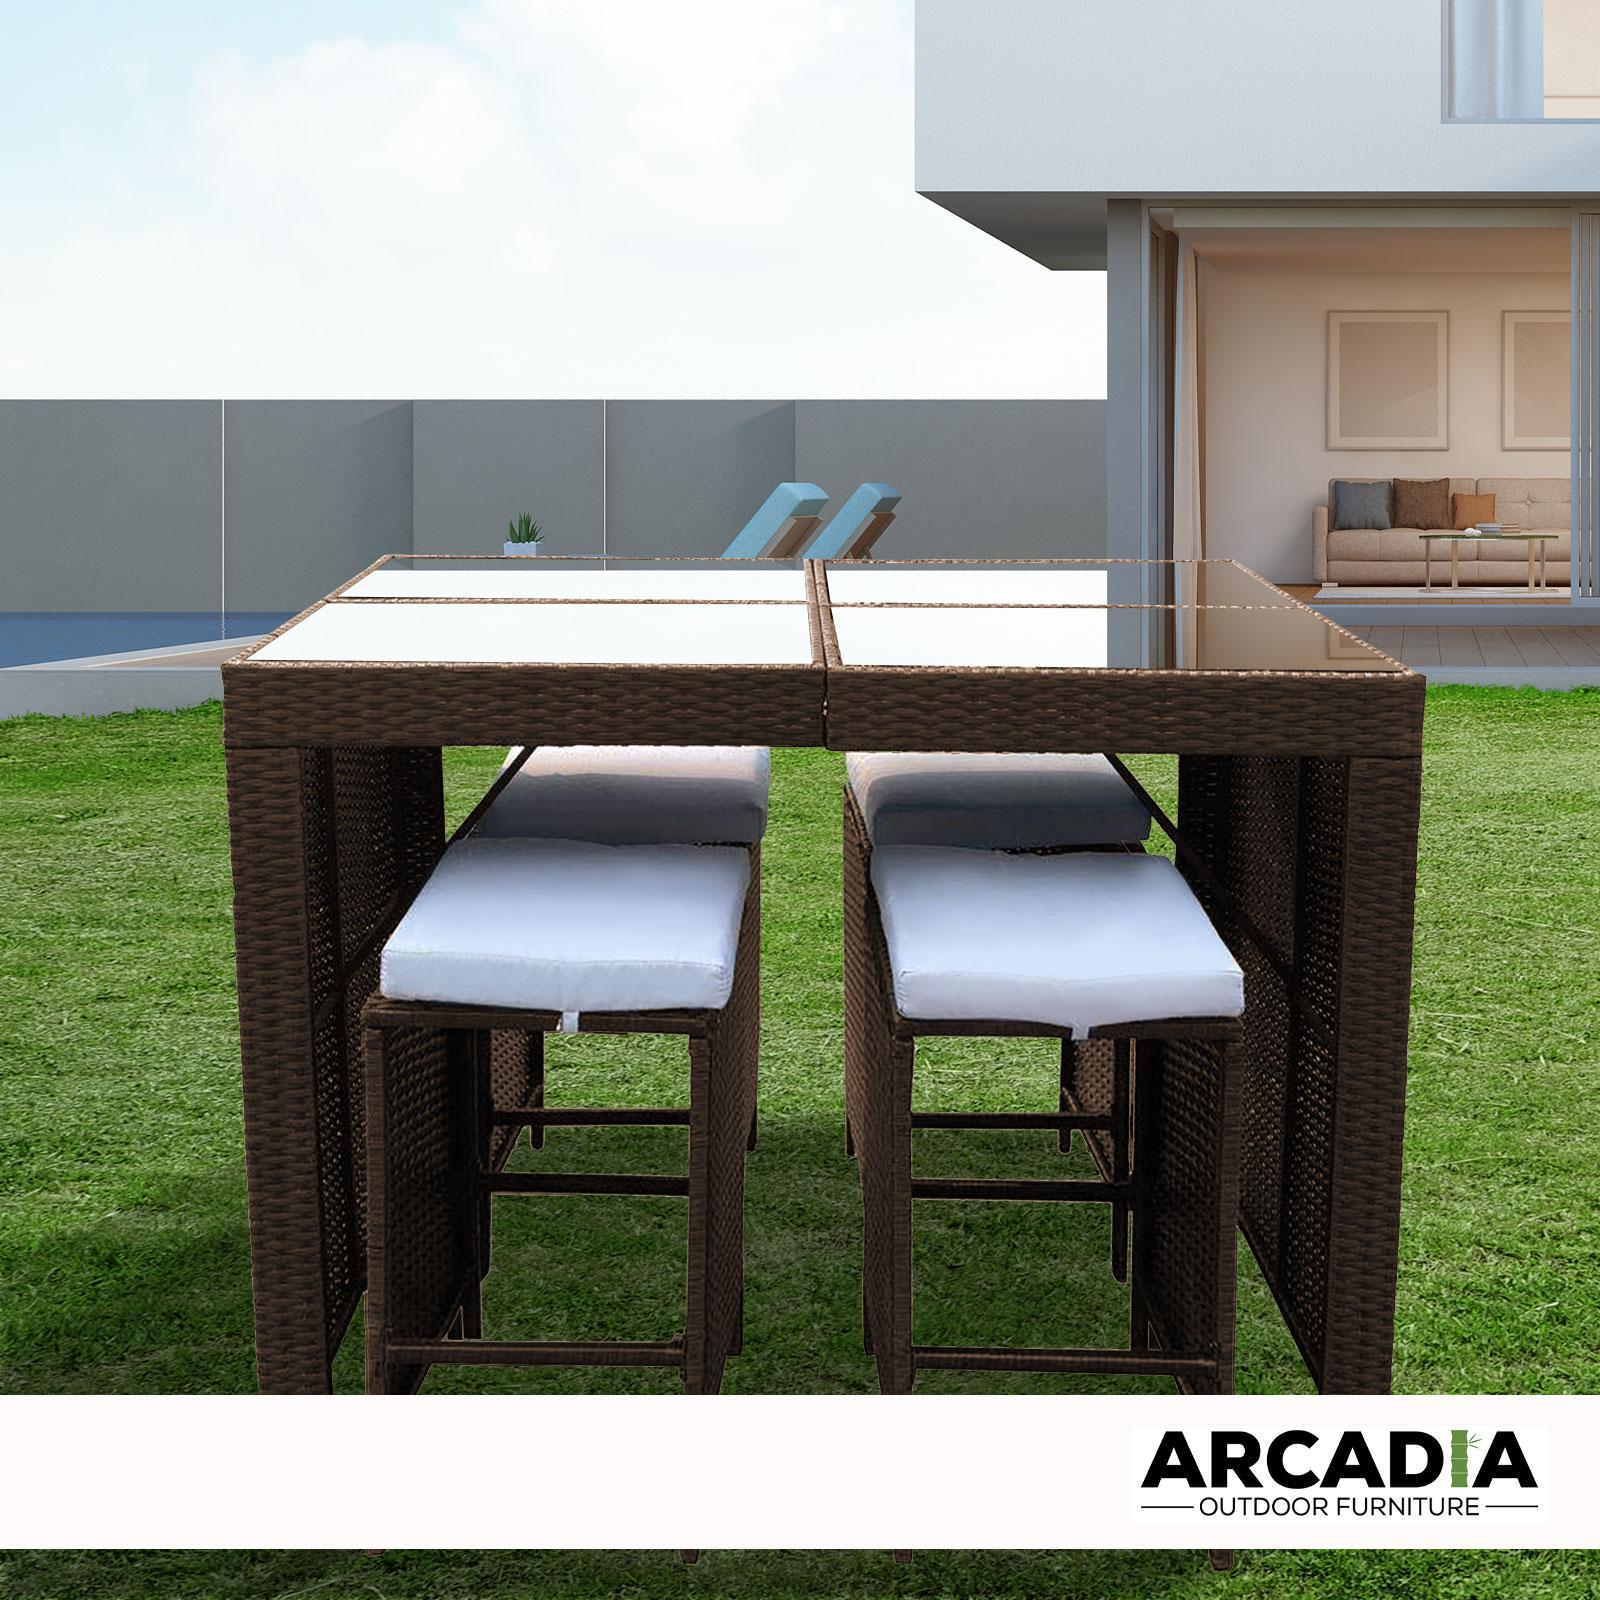 arcadia furniture outdoor 5 piece bar table set rattan and cushions patio dining oatmeal and grey patio furniture sets